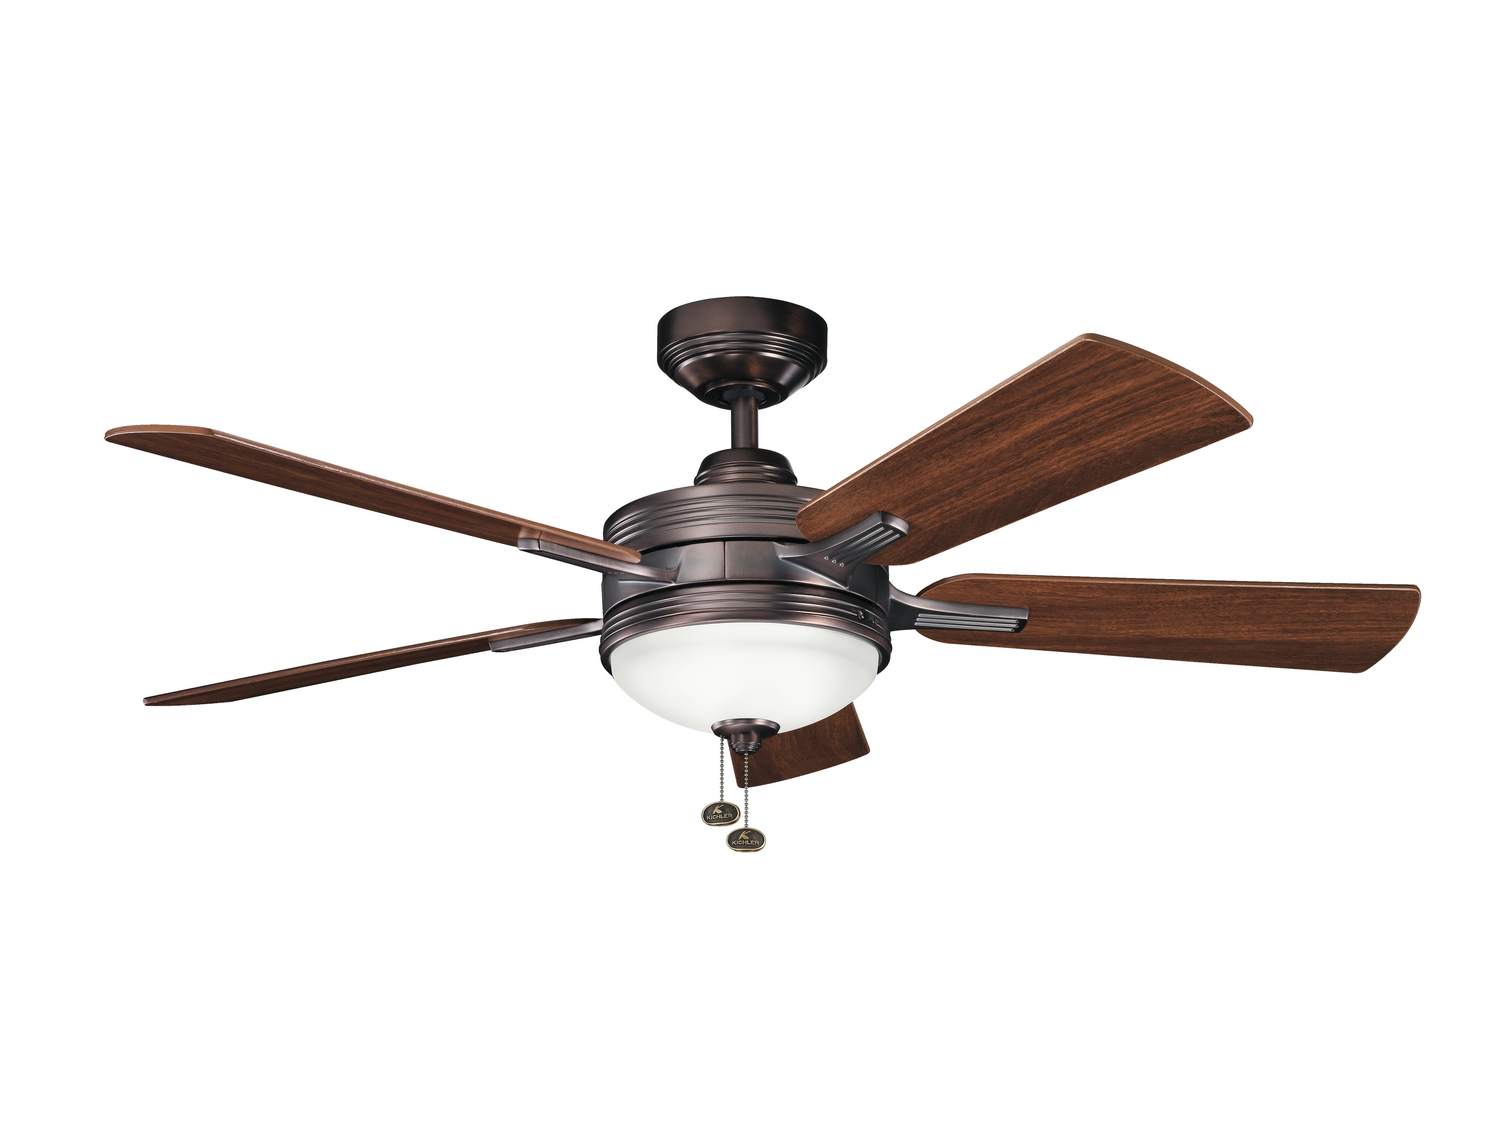 52 inchCeiling Fan from the Logan collection by Kichler 300148OBB